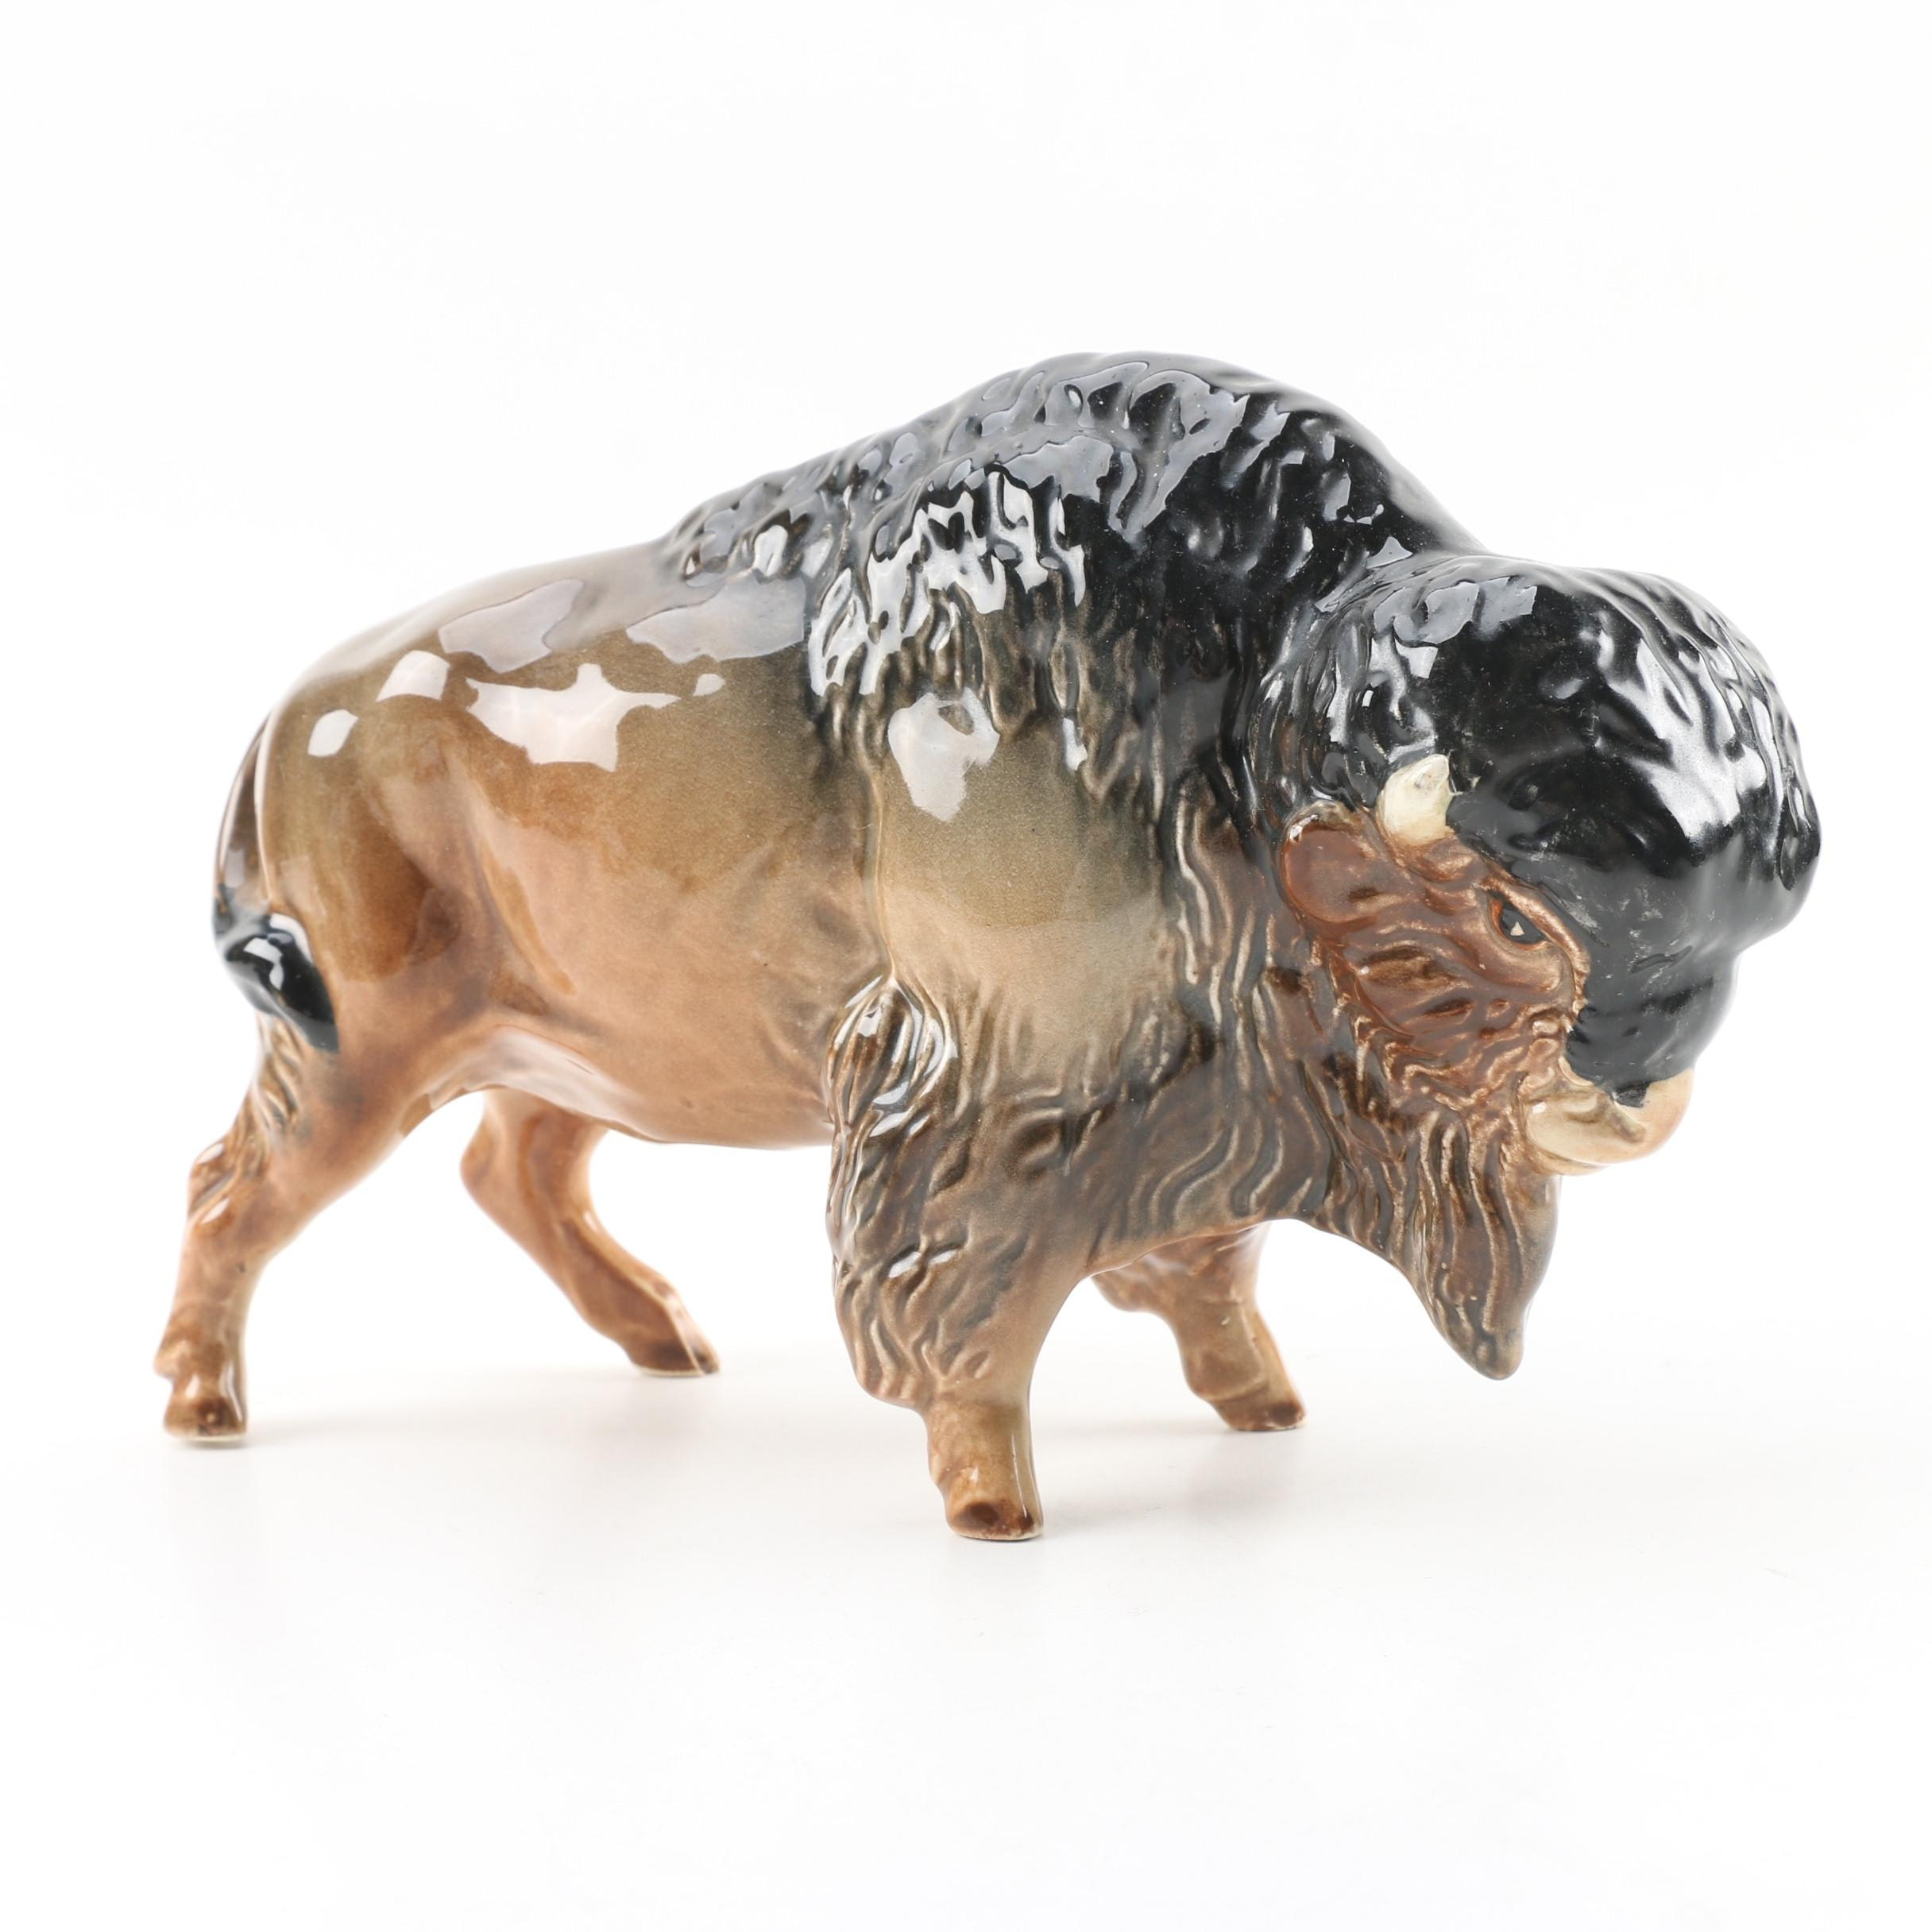 English Ceramic Bison Figurine